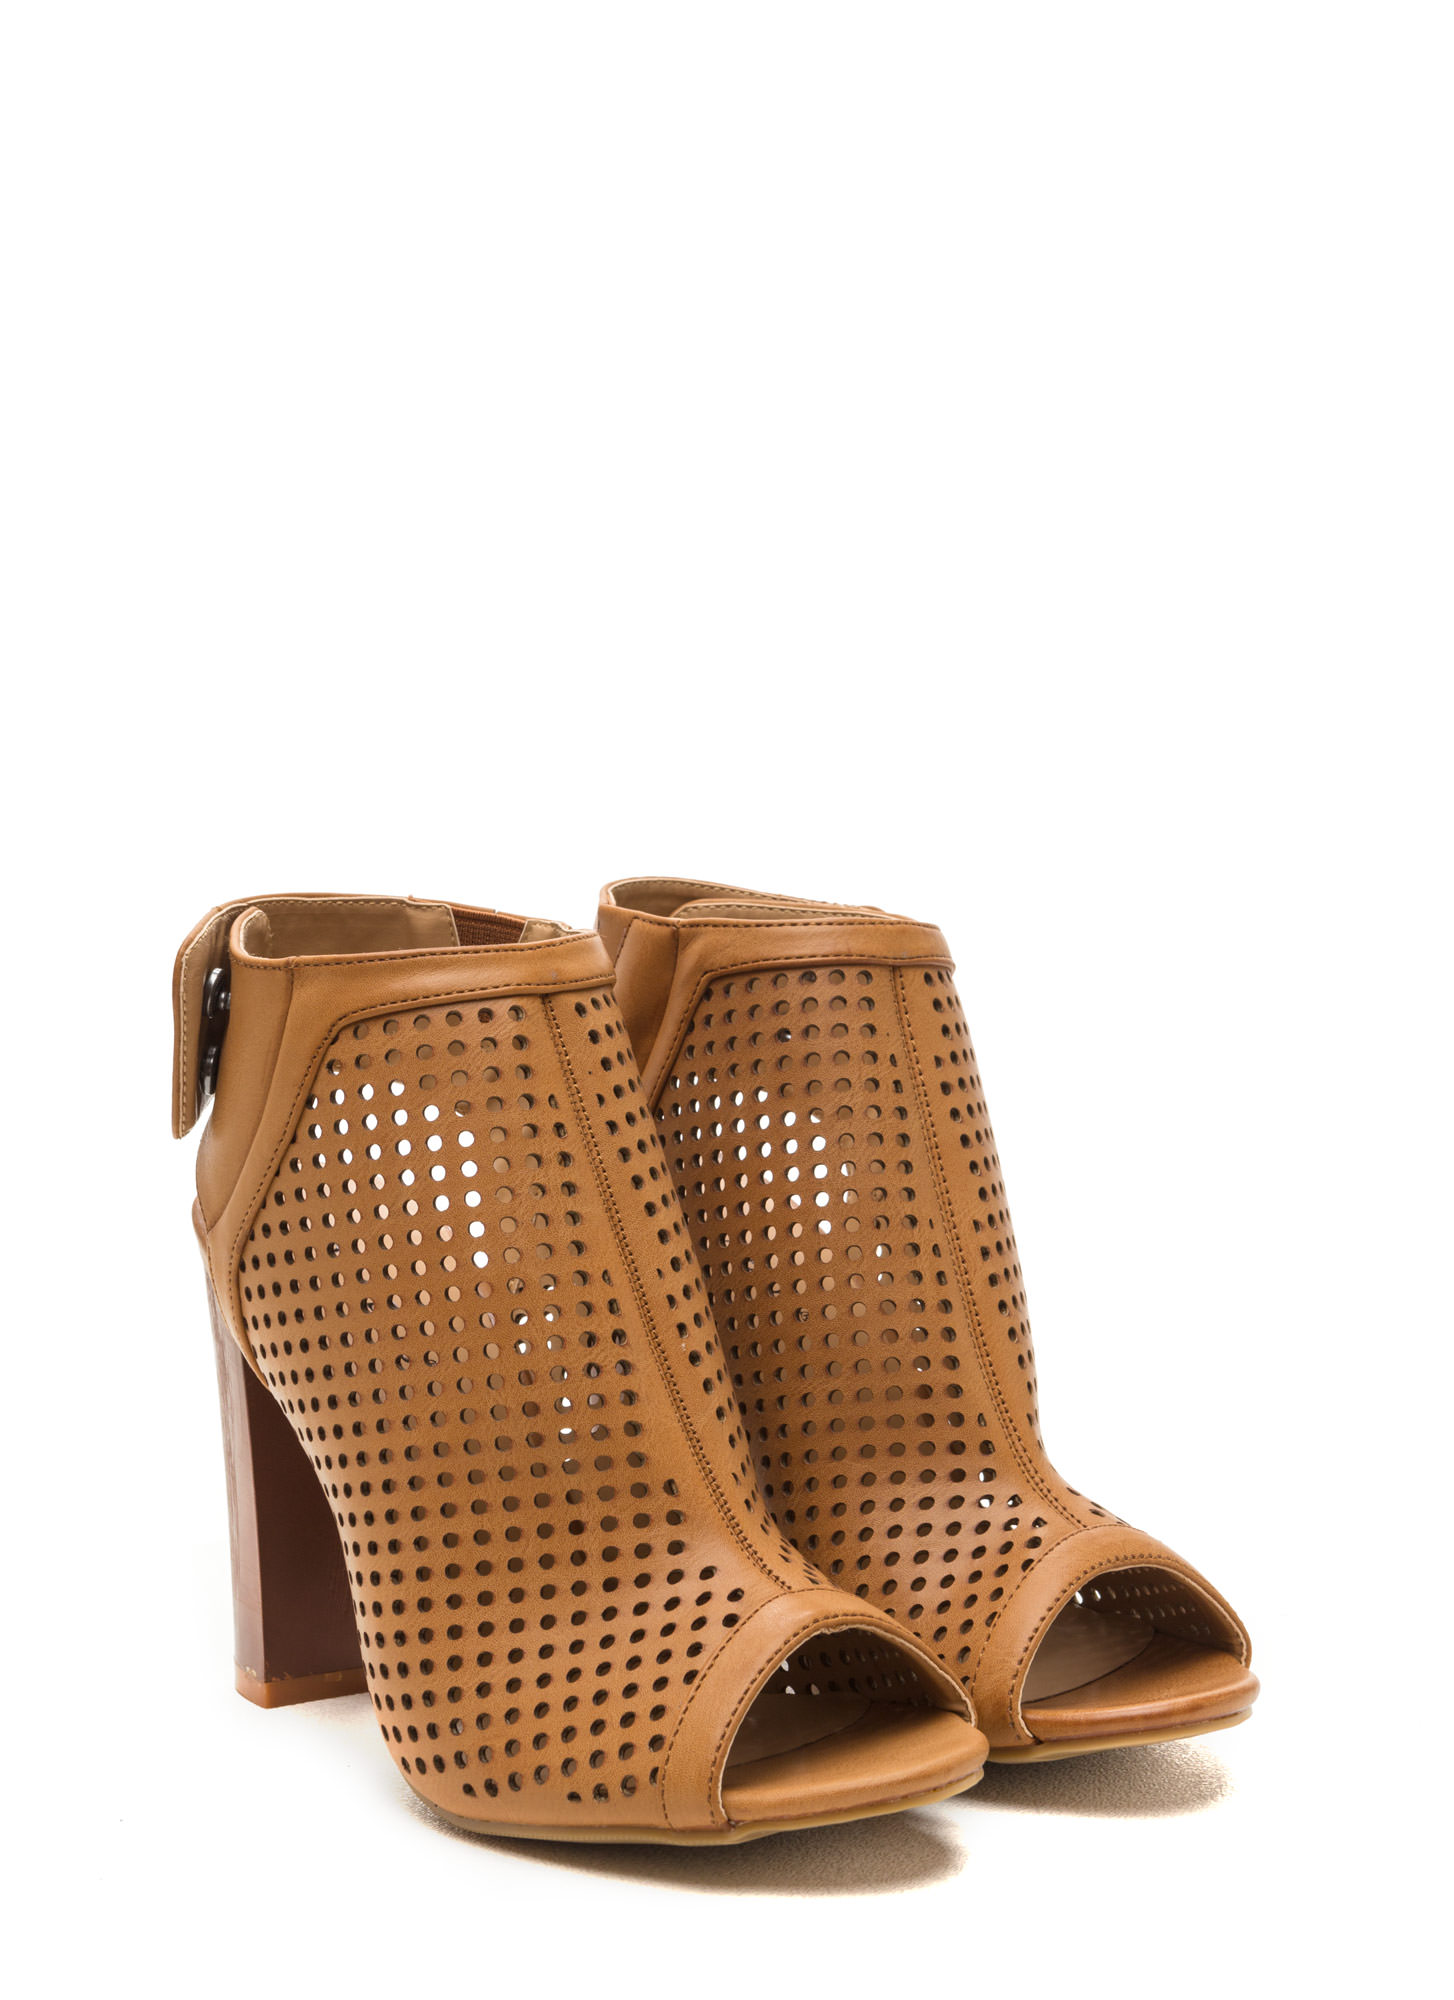 Pleased As Punch Perforated Booties TAN